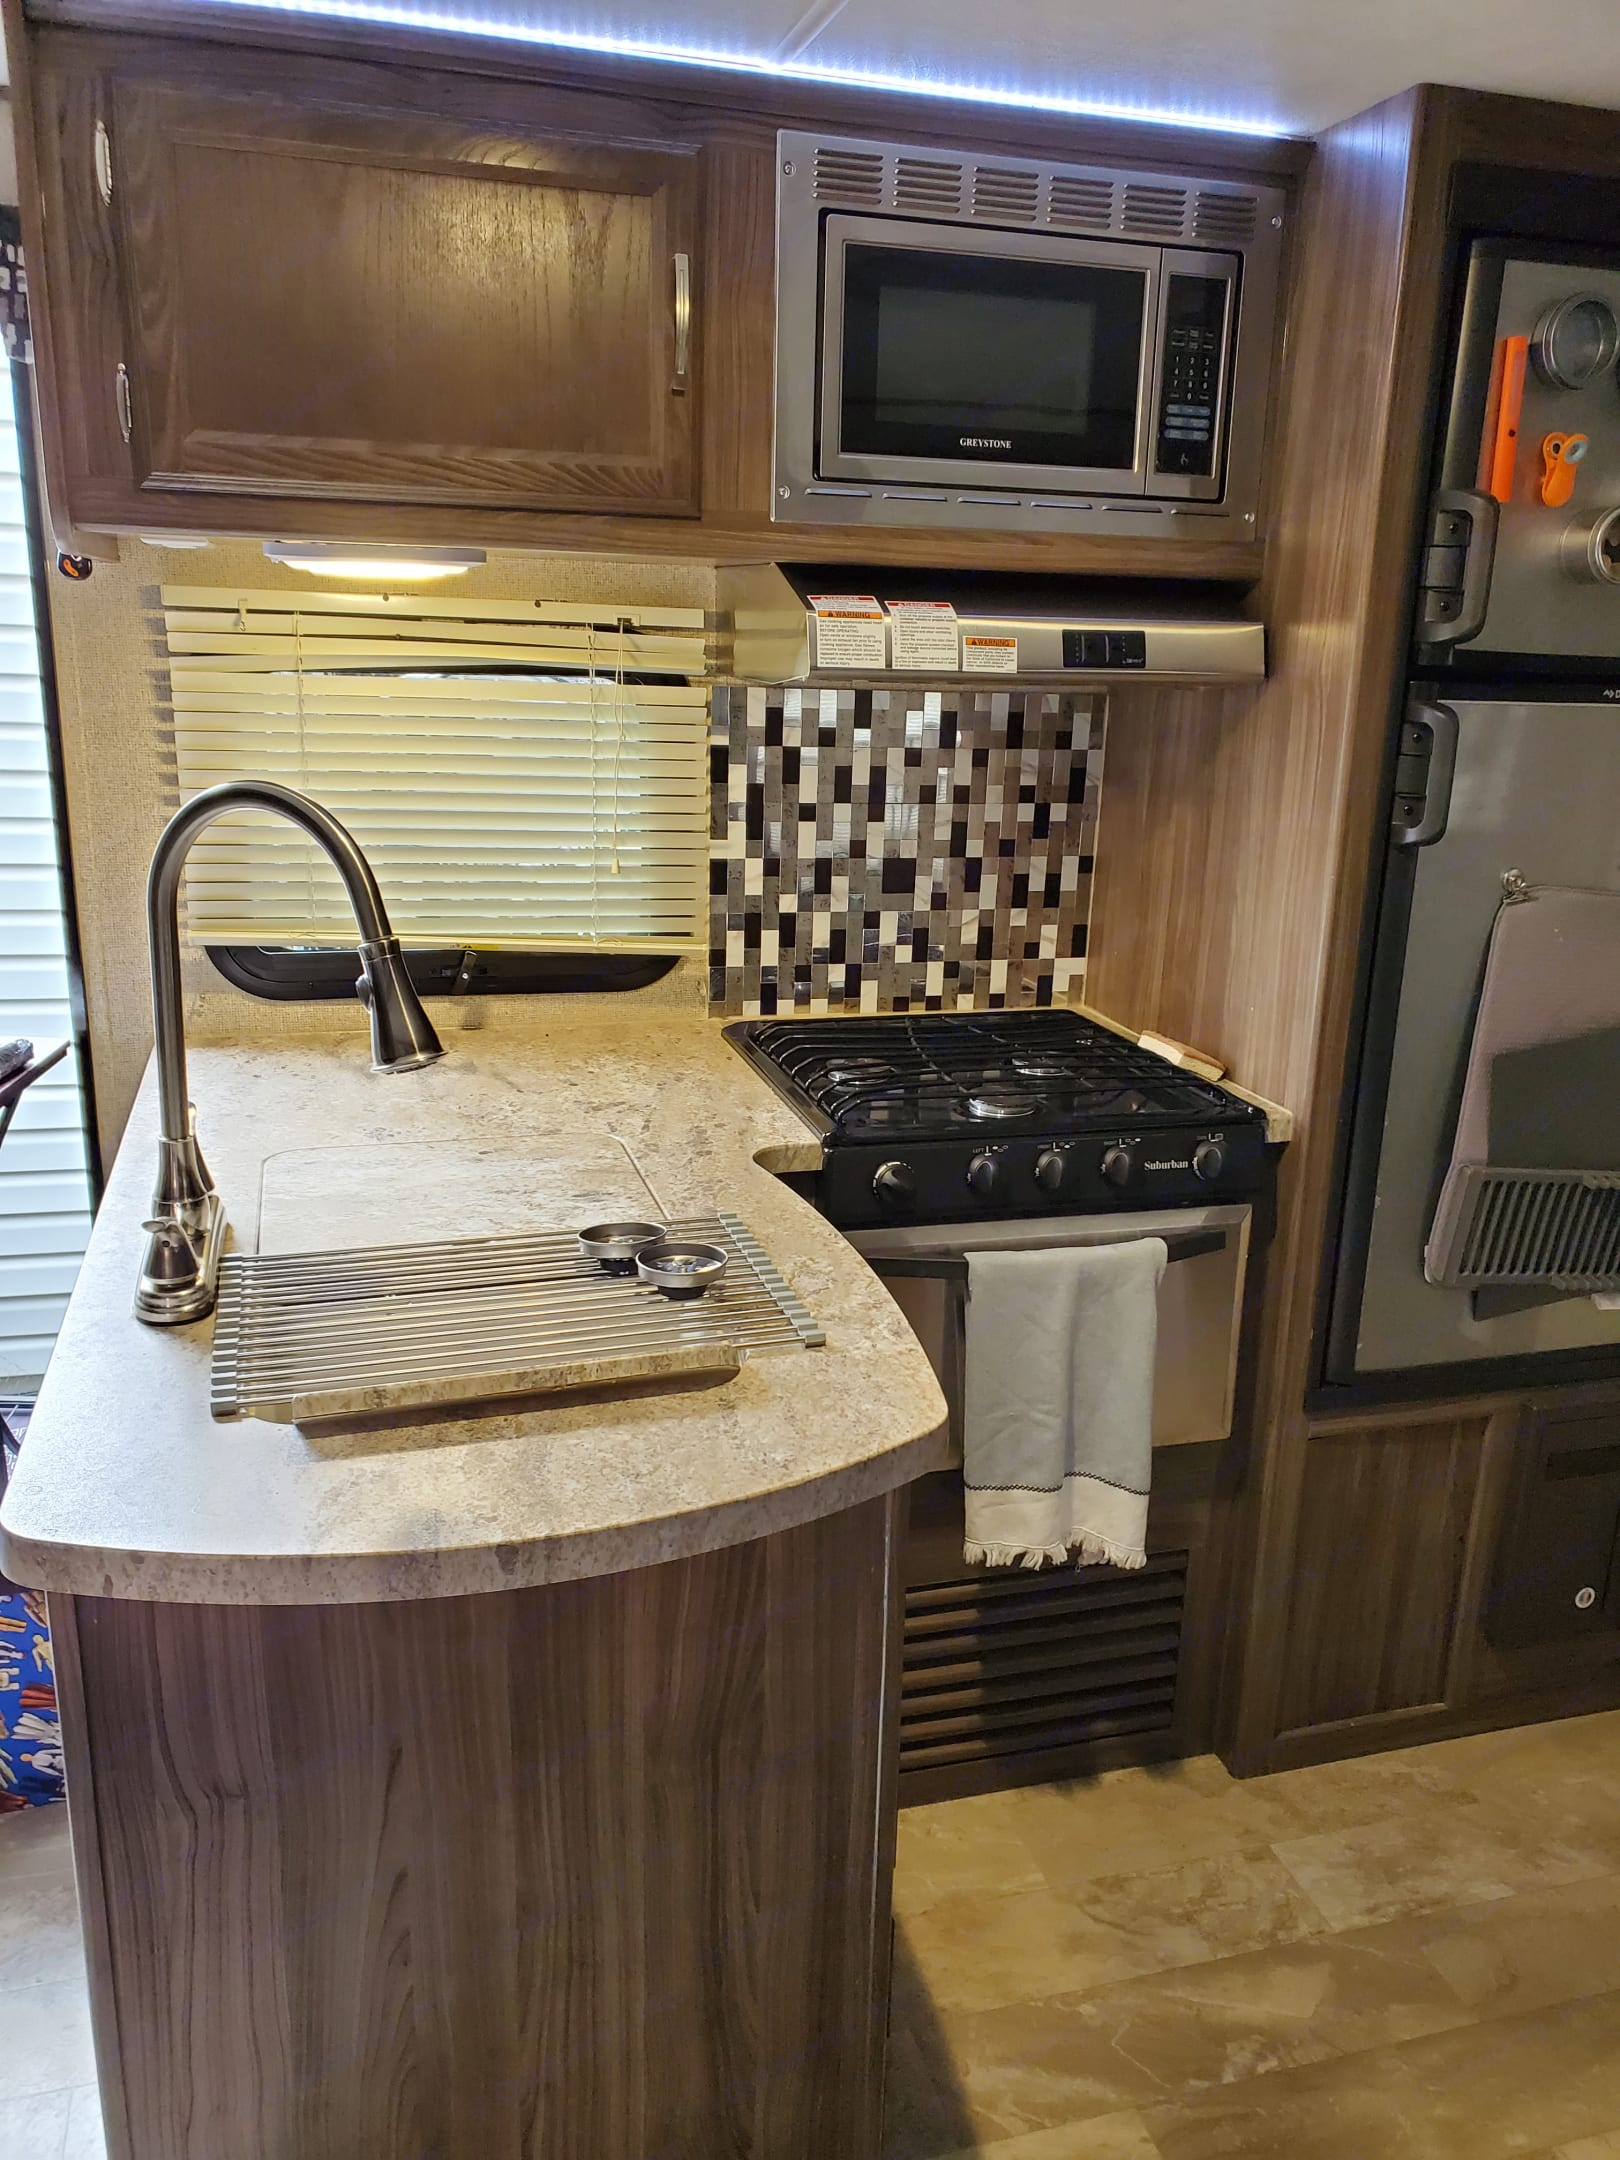 Microwave, 3 burner gas stove, gas oven, dual-sided sink, and loads of cookware!. Coachmen Apex 2018